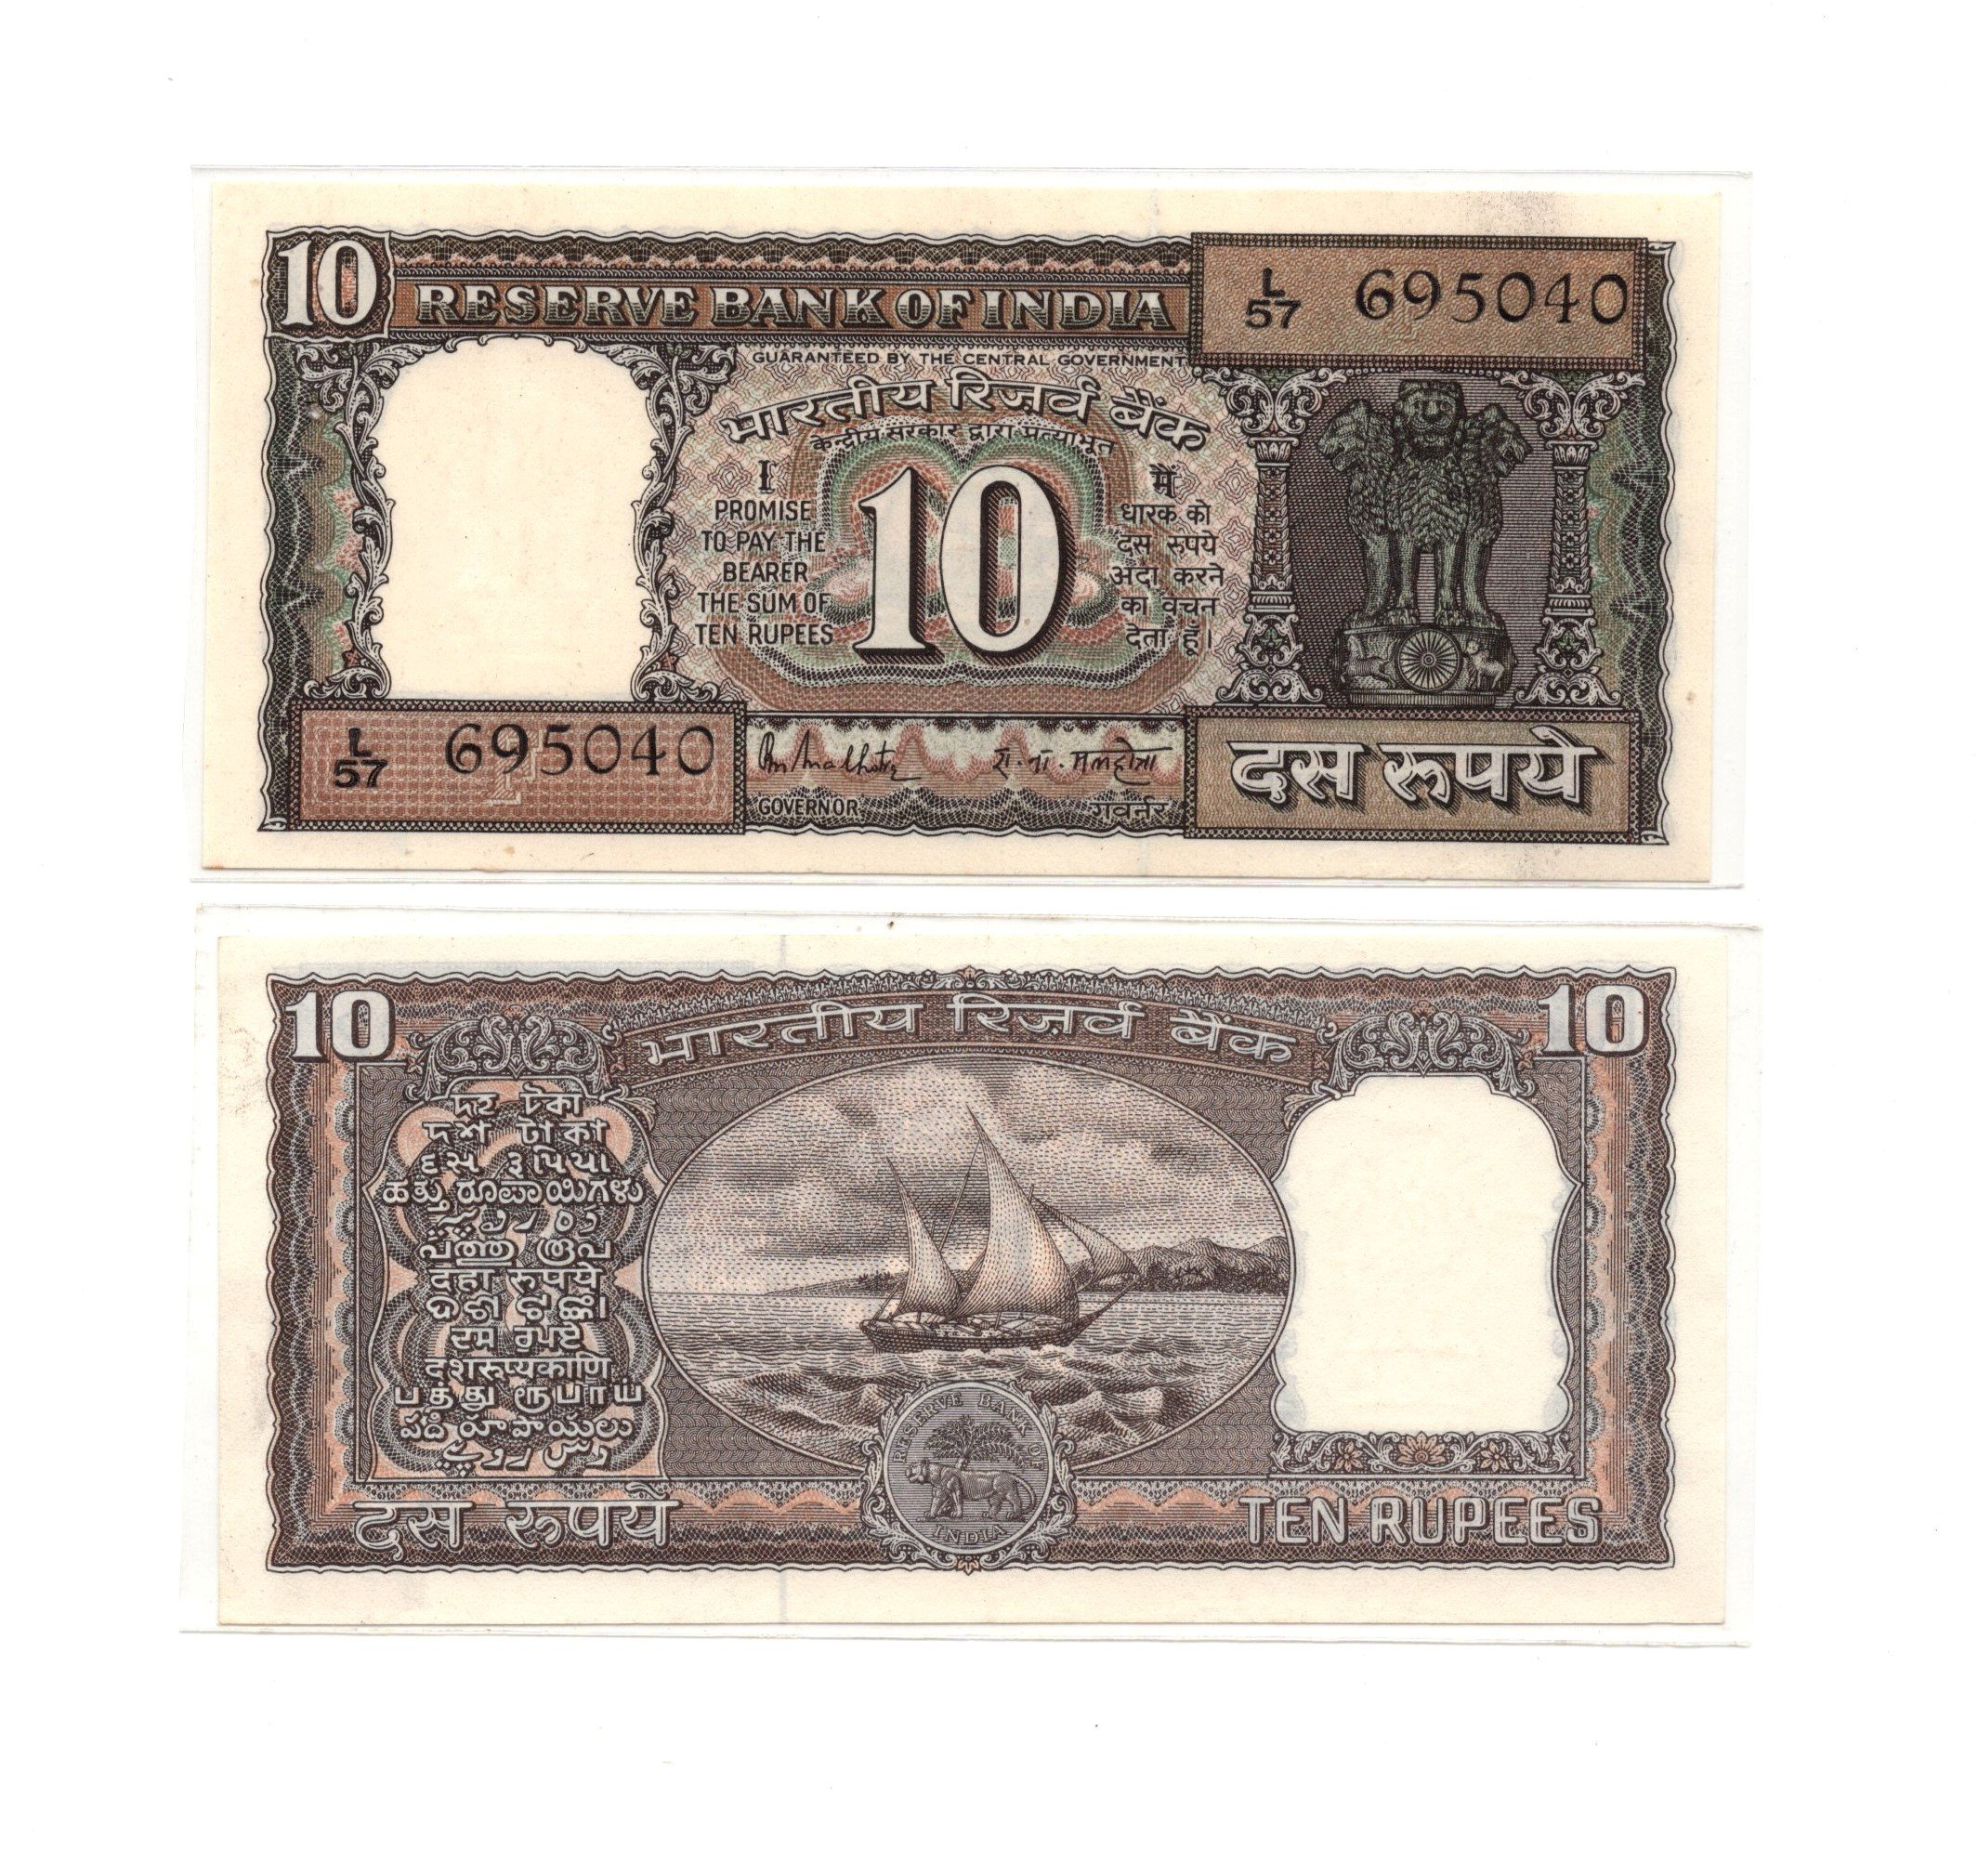 India 10 rupees banknote for sale